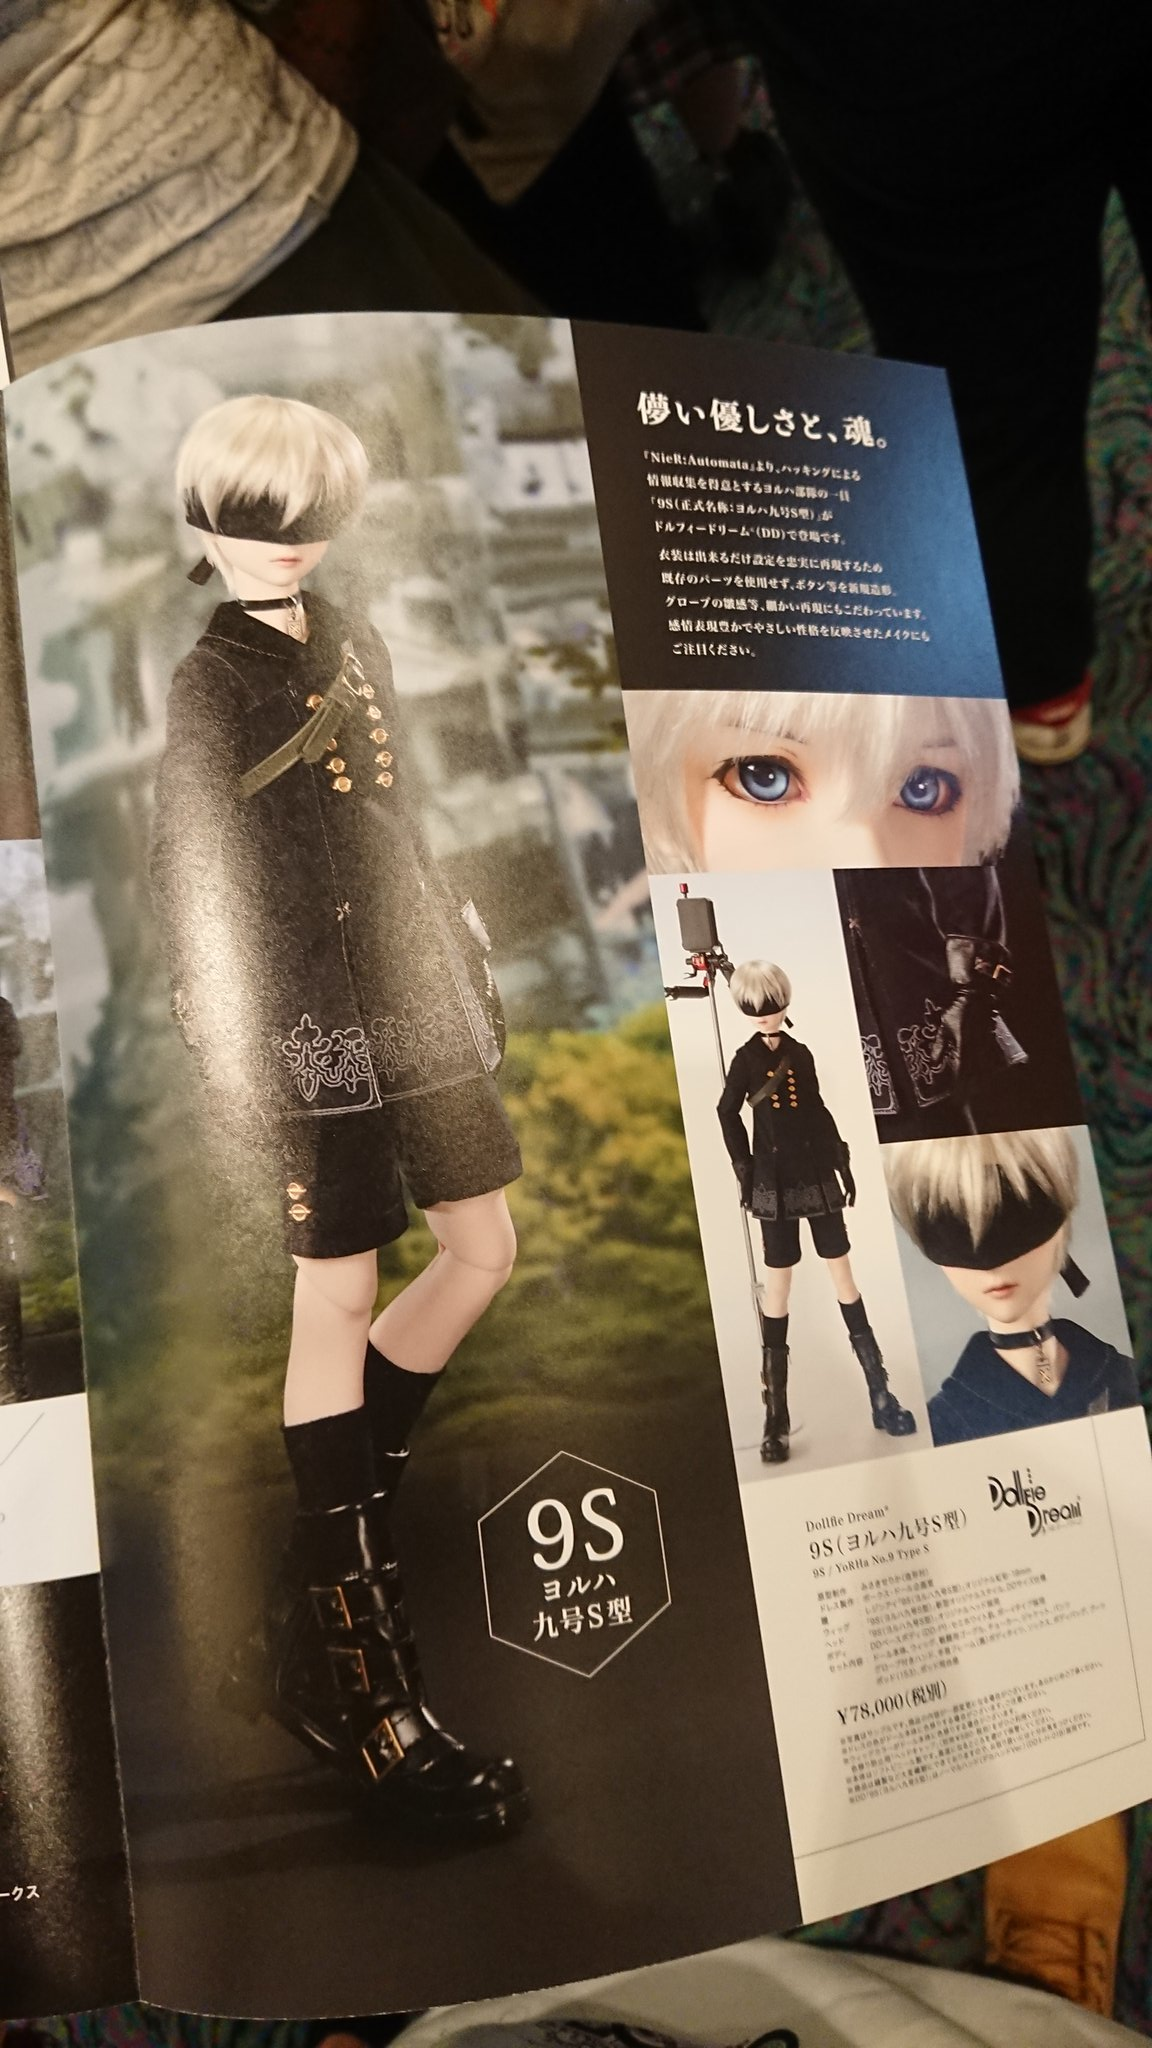 [Dollfie Dream] Nier Automata - Page 3 Img_2024